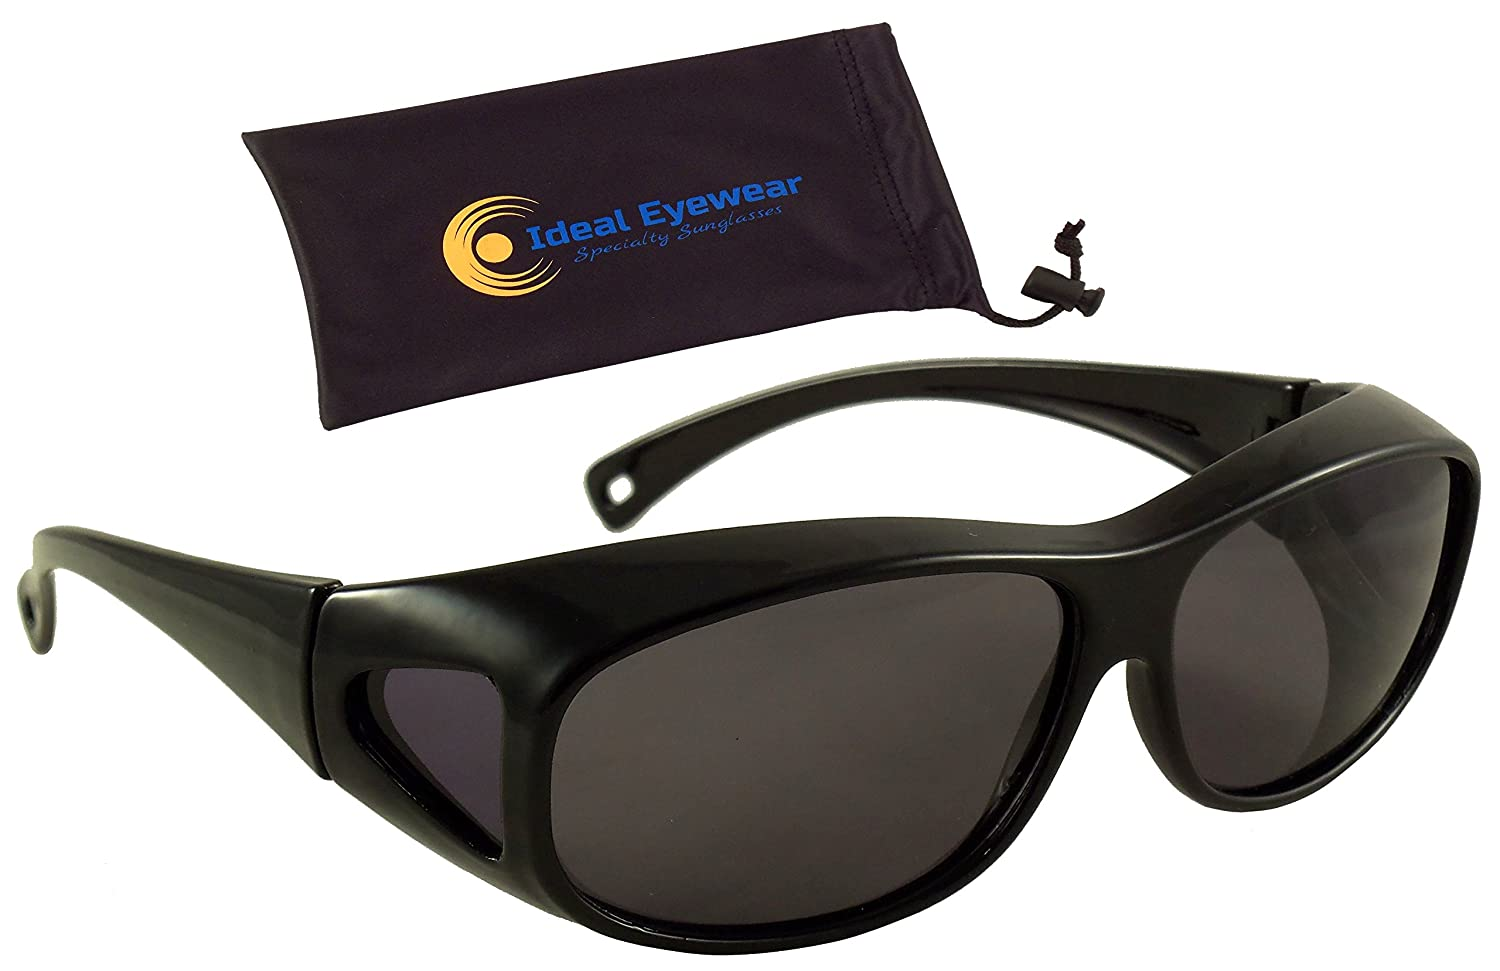 ec2a19540a6b Polarized Floating Fit Over Sunglasses by Ideal Eyewear - Wear Over  Prescription Glasses - They Float! - Great for Fishing